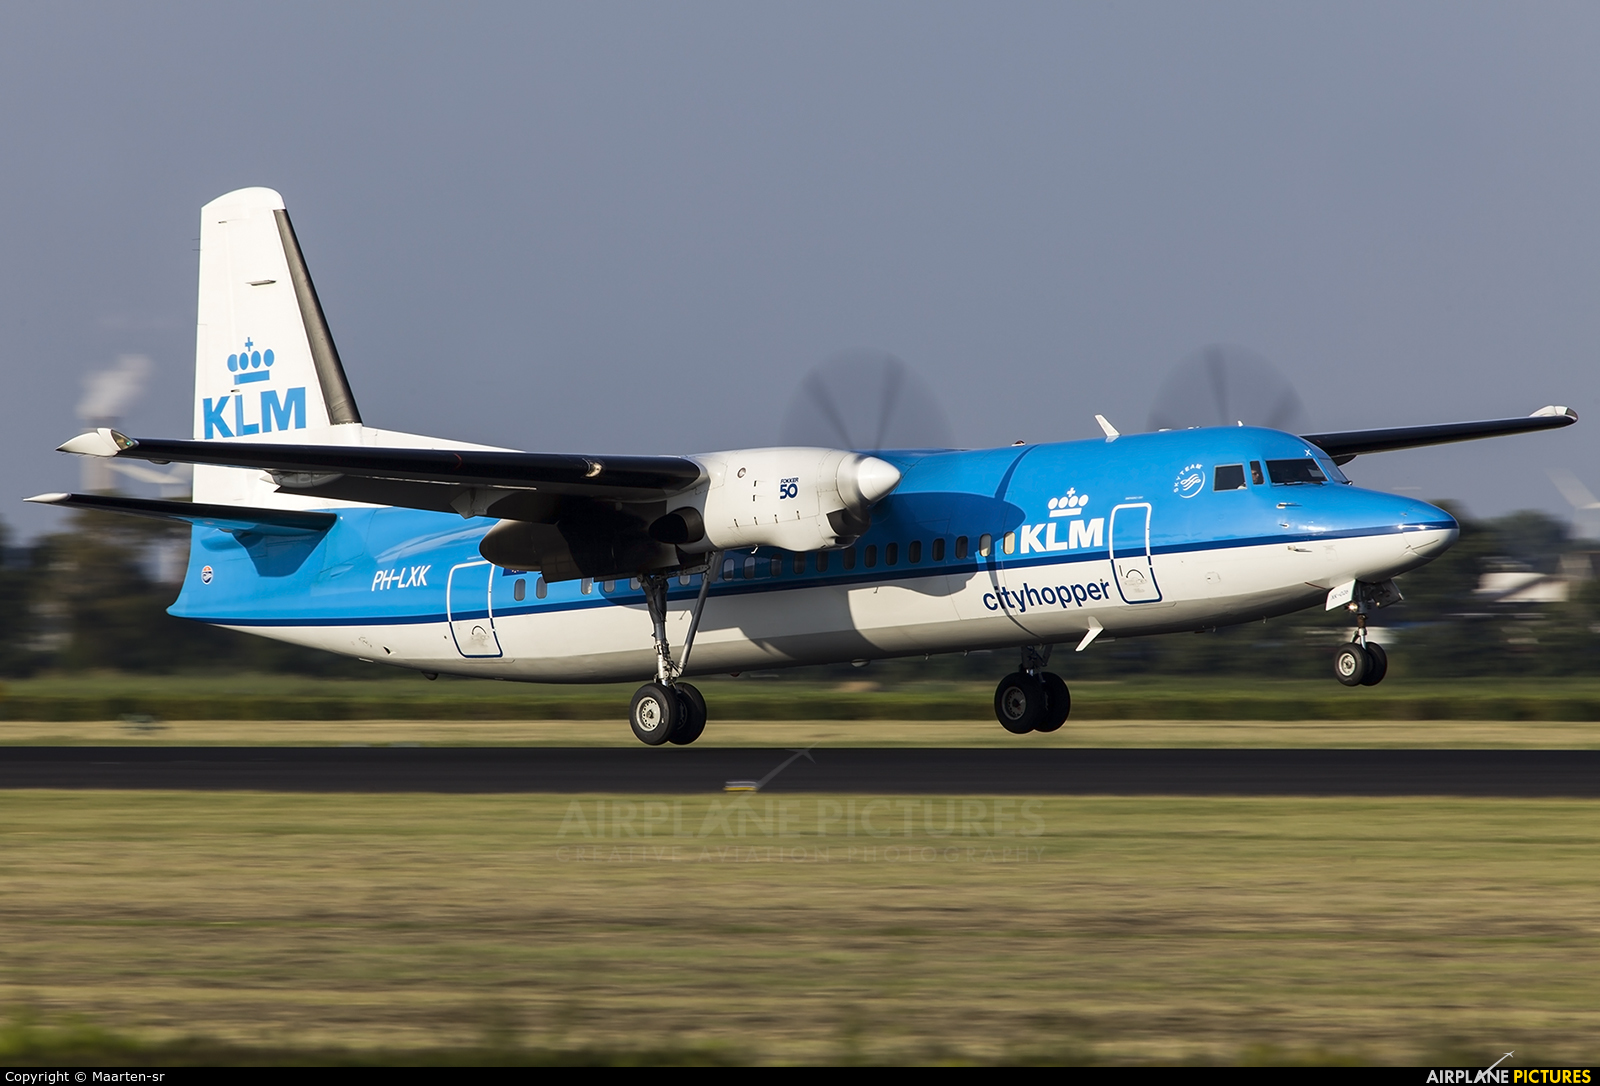 KLM Cityhopper PH-LXK aircraft at Amsterdam - Schiphol